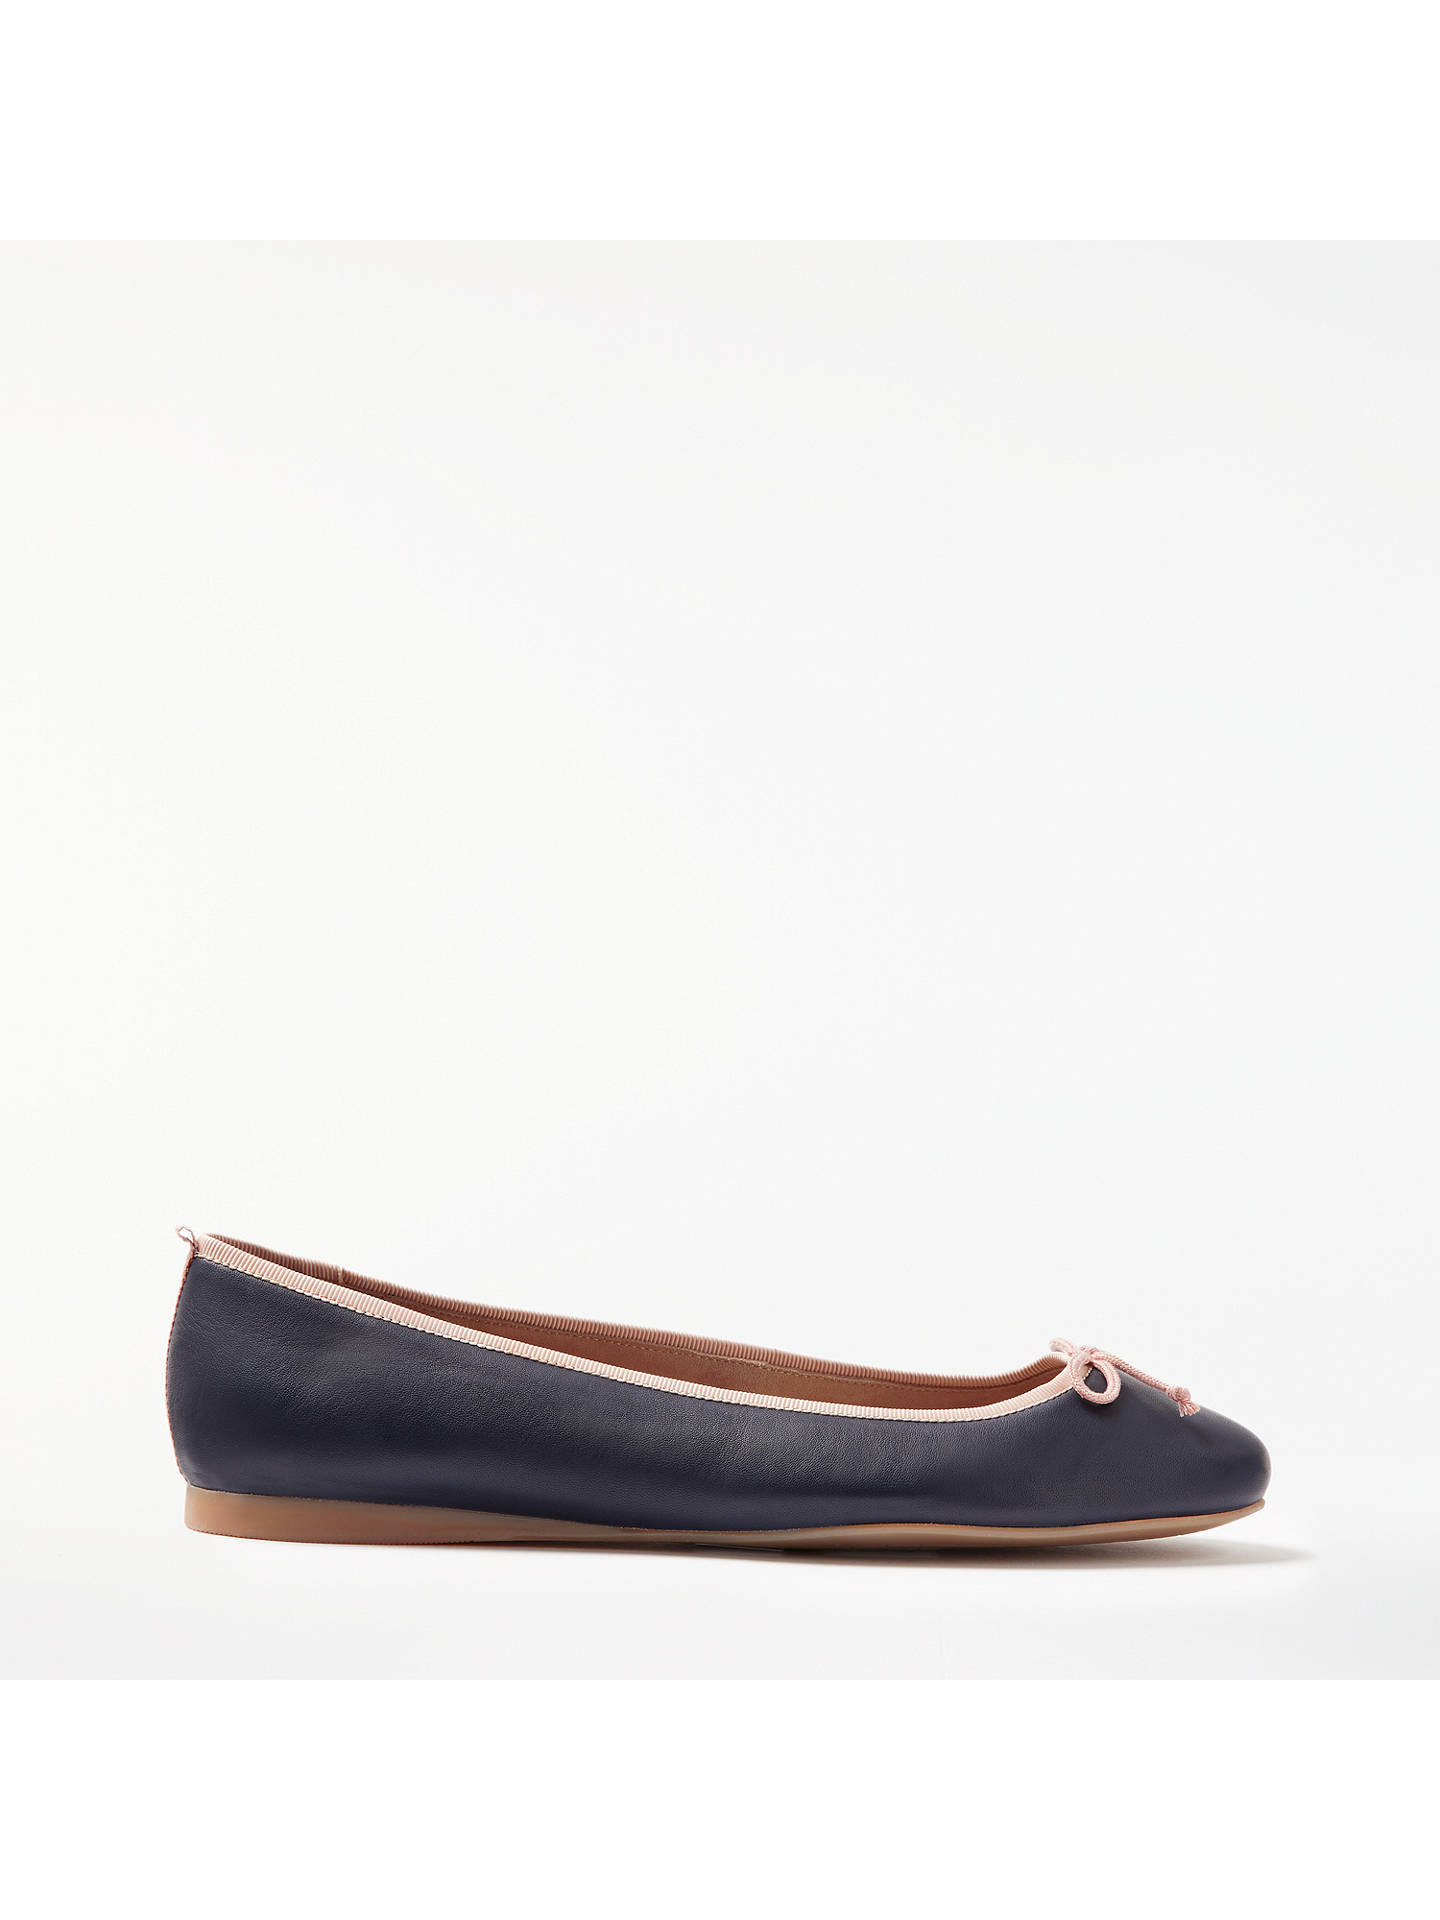 Buy Boden Ballerina Pumps, Navy Leather, 4 Online at johnlewis.com